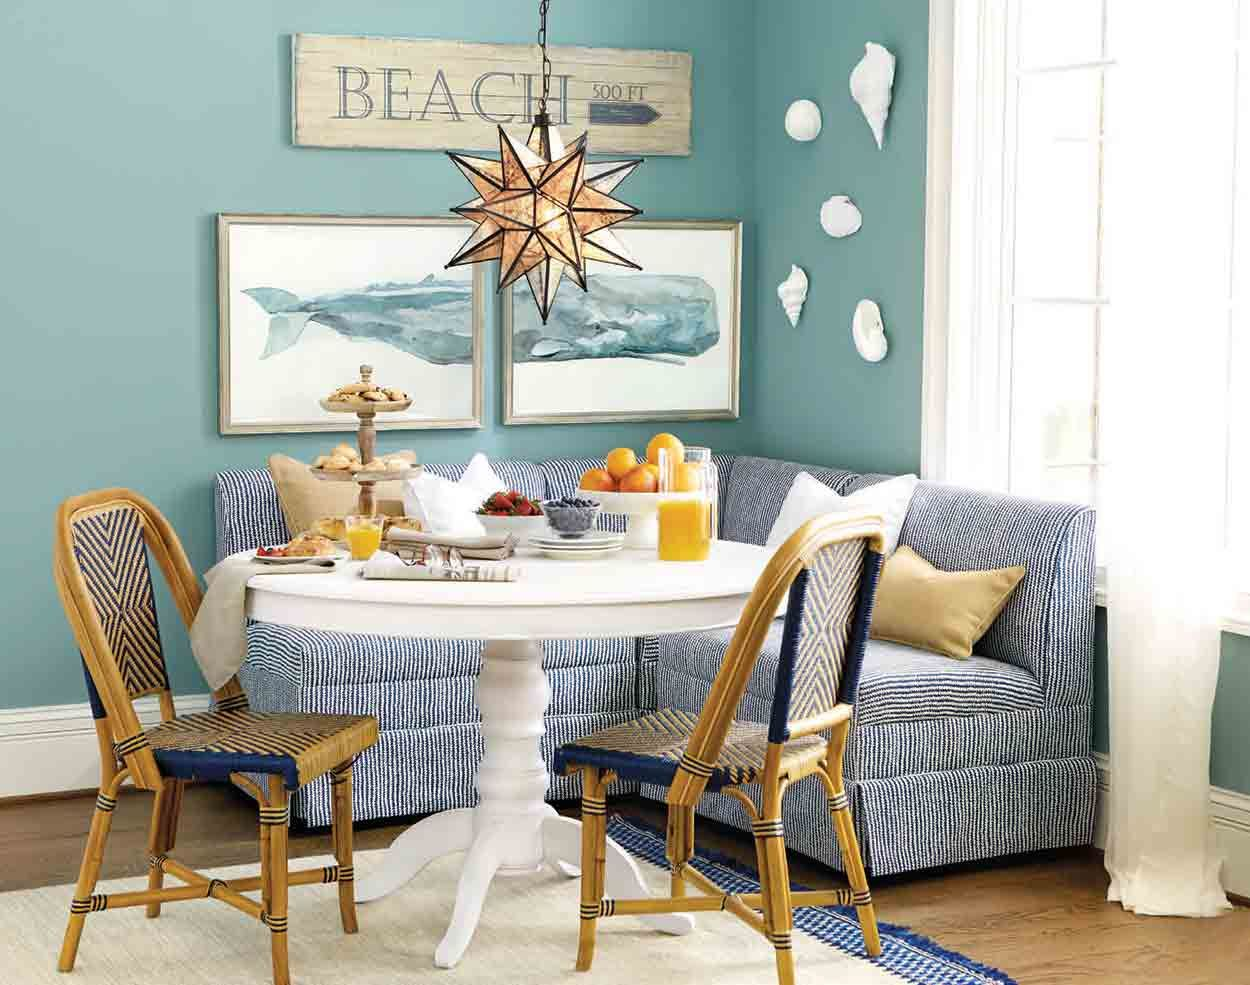 Dining Rooms | Banquettes, Coastal and Personality